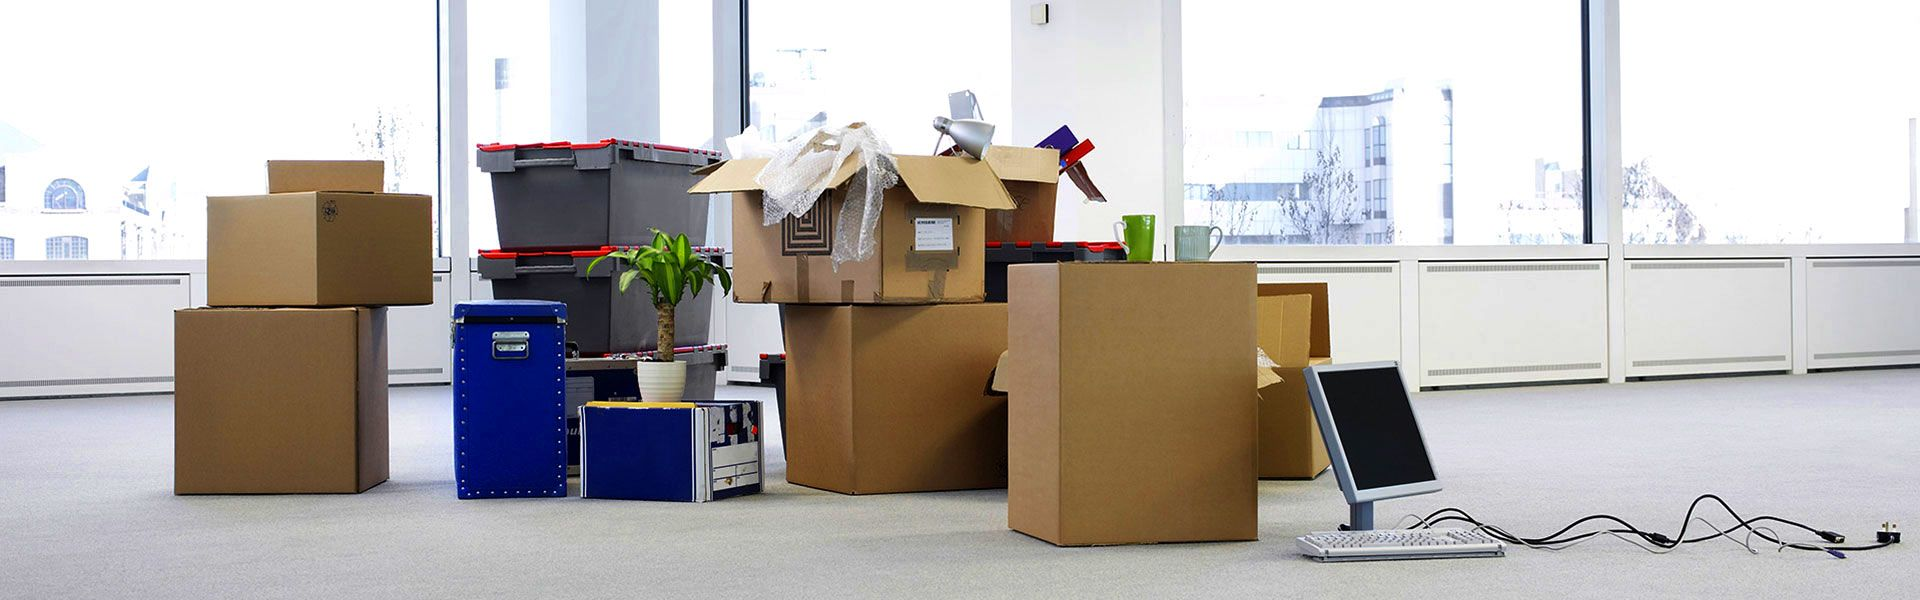 End Of Tenancy Cleaning In Oxford Buzzmaids Professional Cleaners Office Relocation Office Moving House Removals